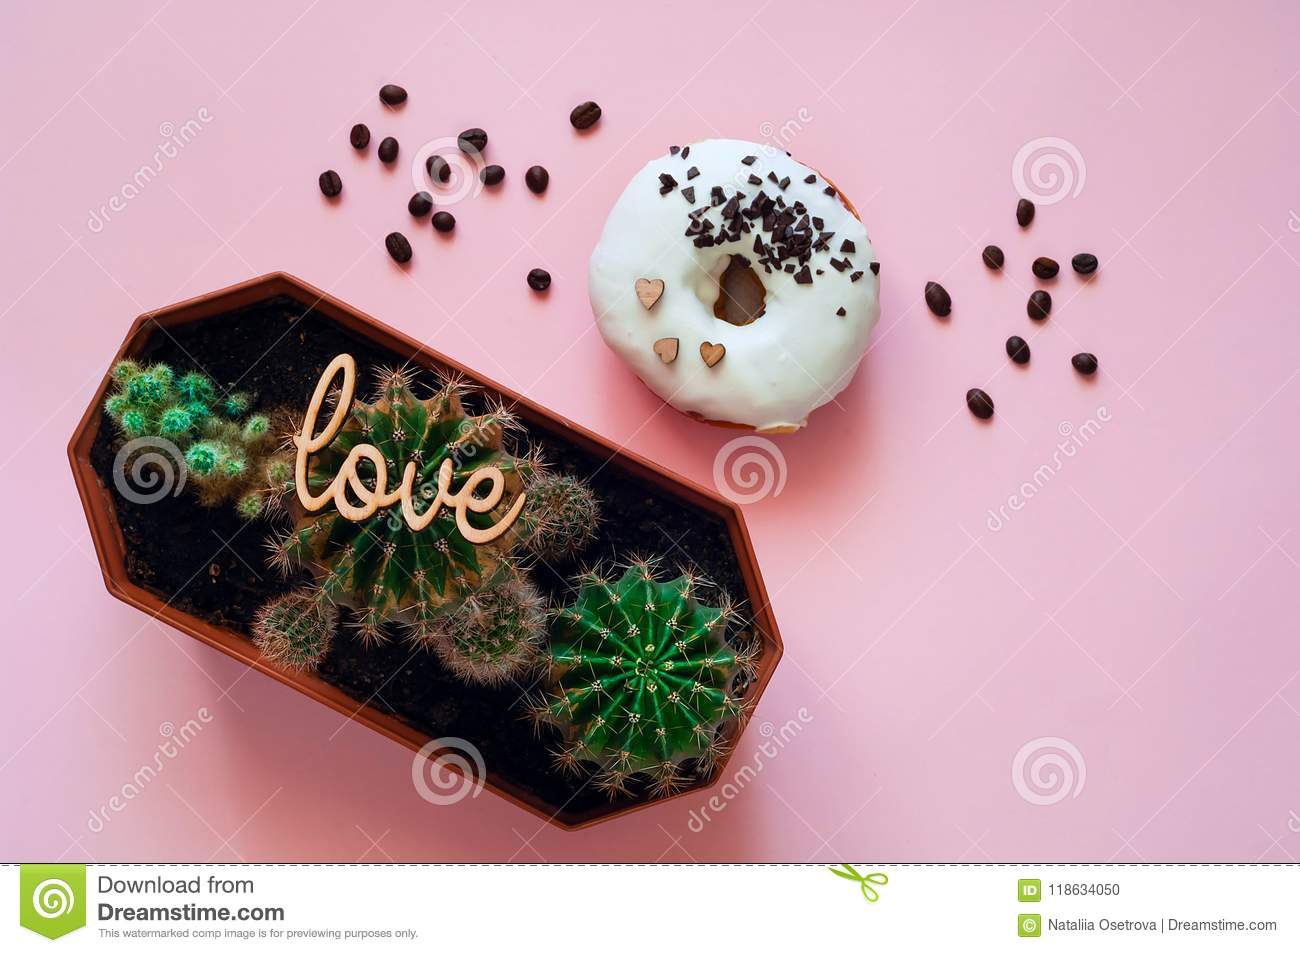 White glazed donut with black chocolate sweets with small cactuses. Food creative concept. Green Neon Mood on Pink background